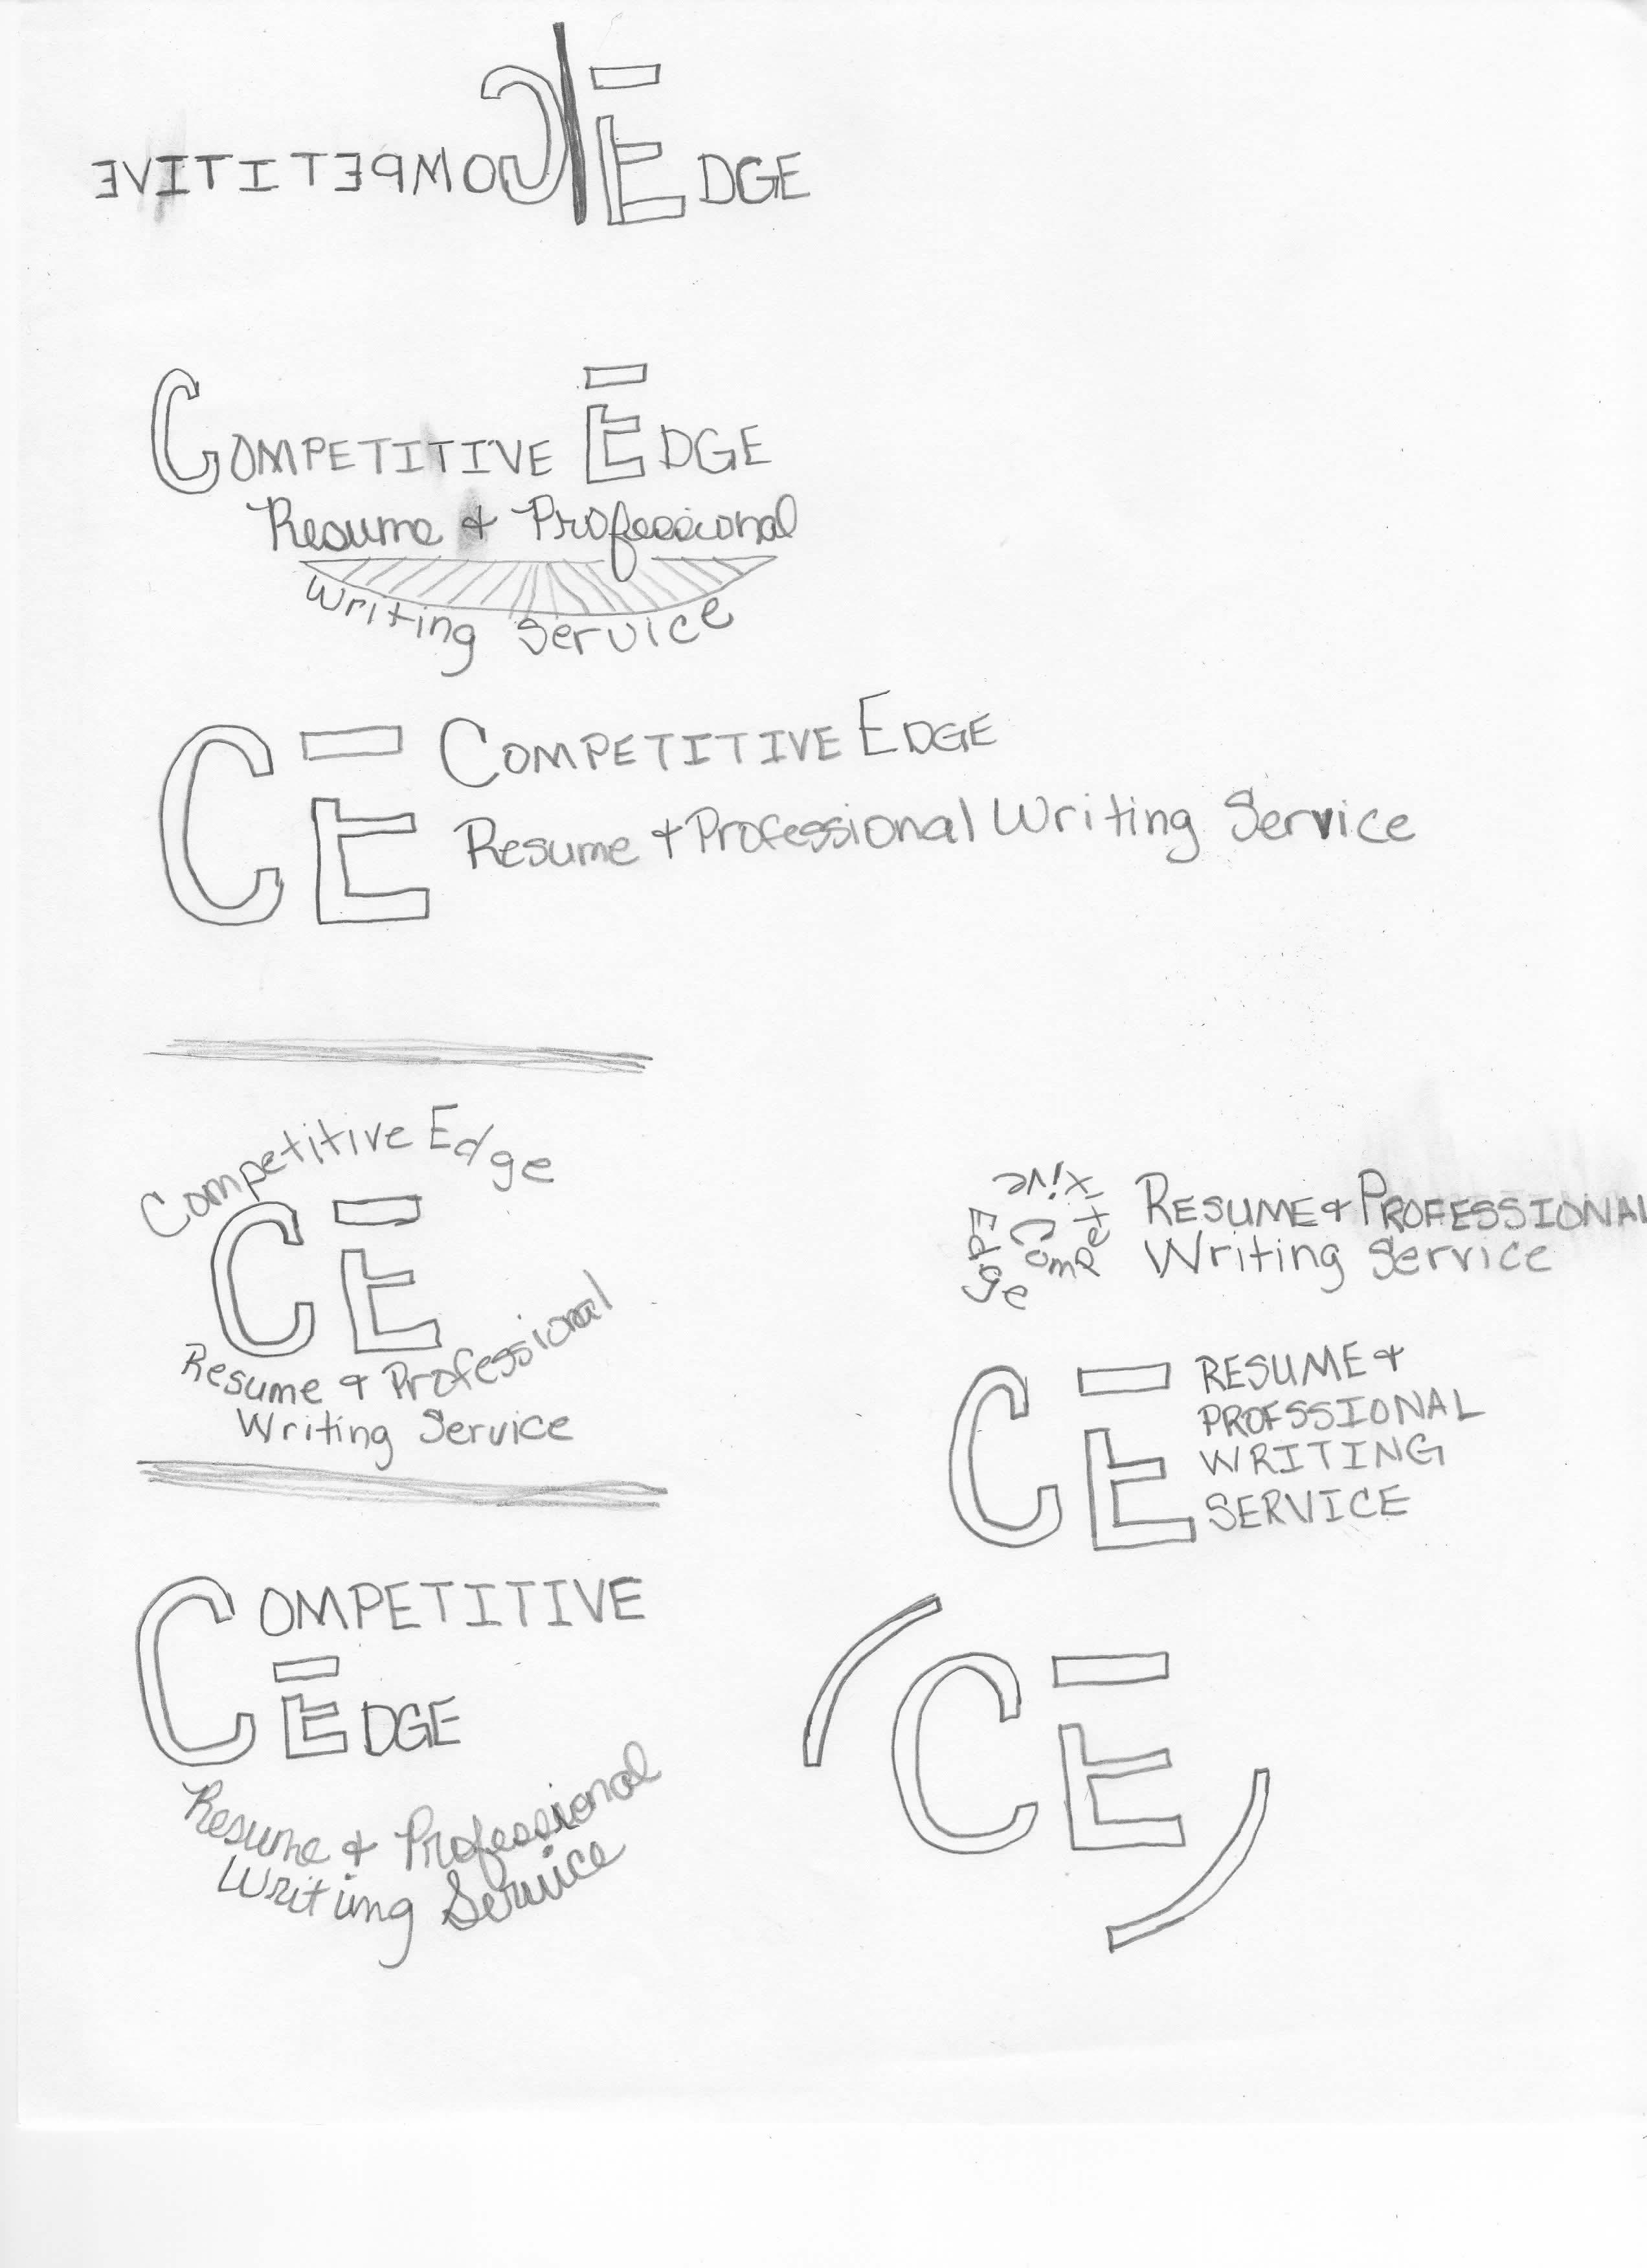 Competitive Edge - image 1 - student project